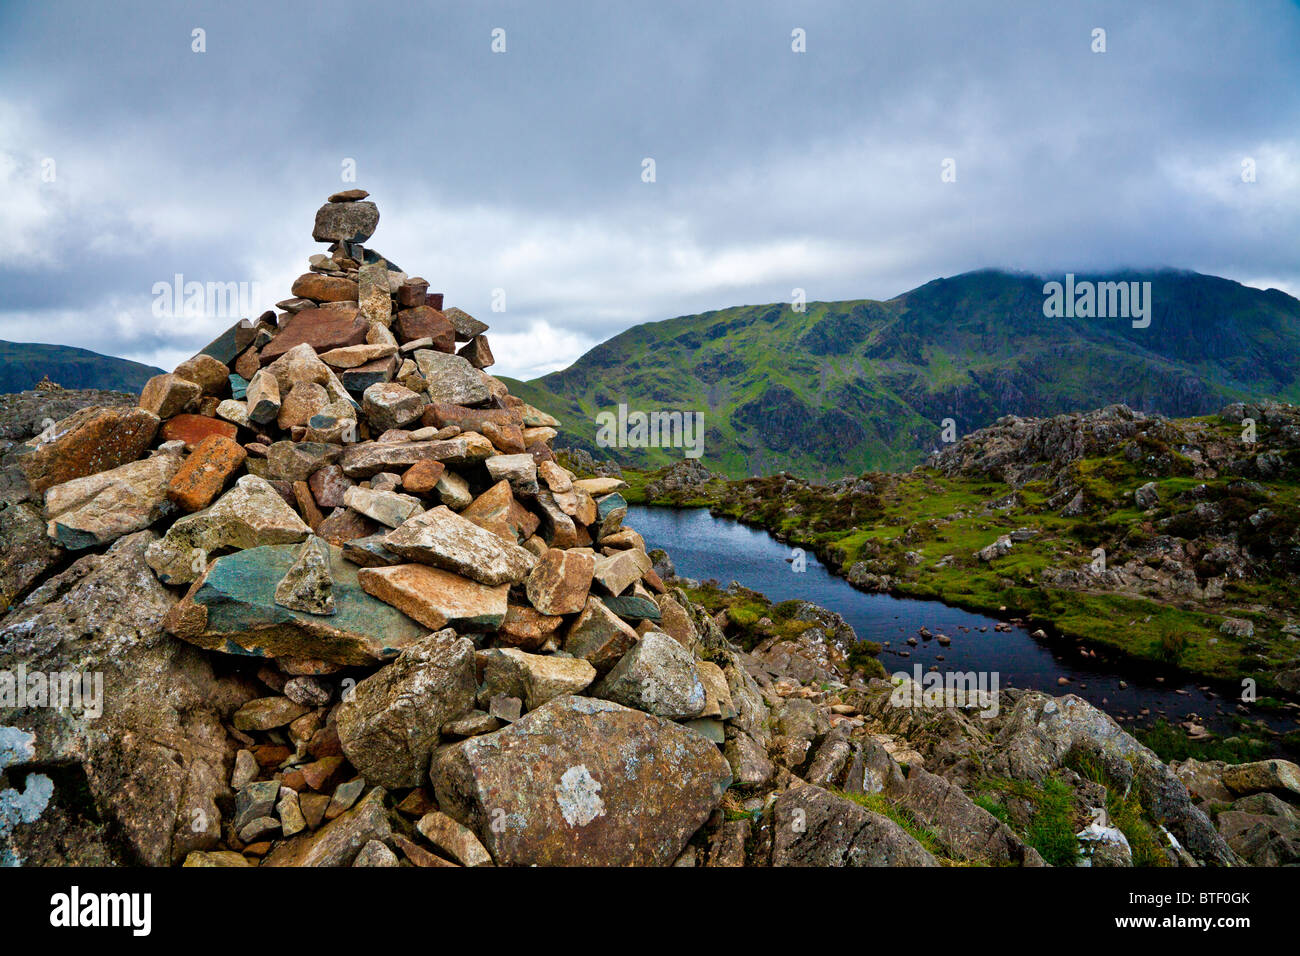 The summit cairn on top of Haystacks in the Lake District, Cumbria, England, UK - Stock Image